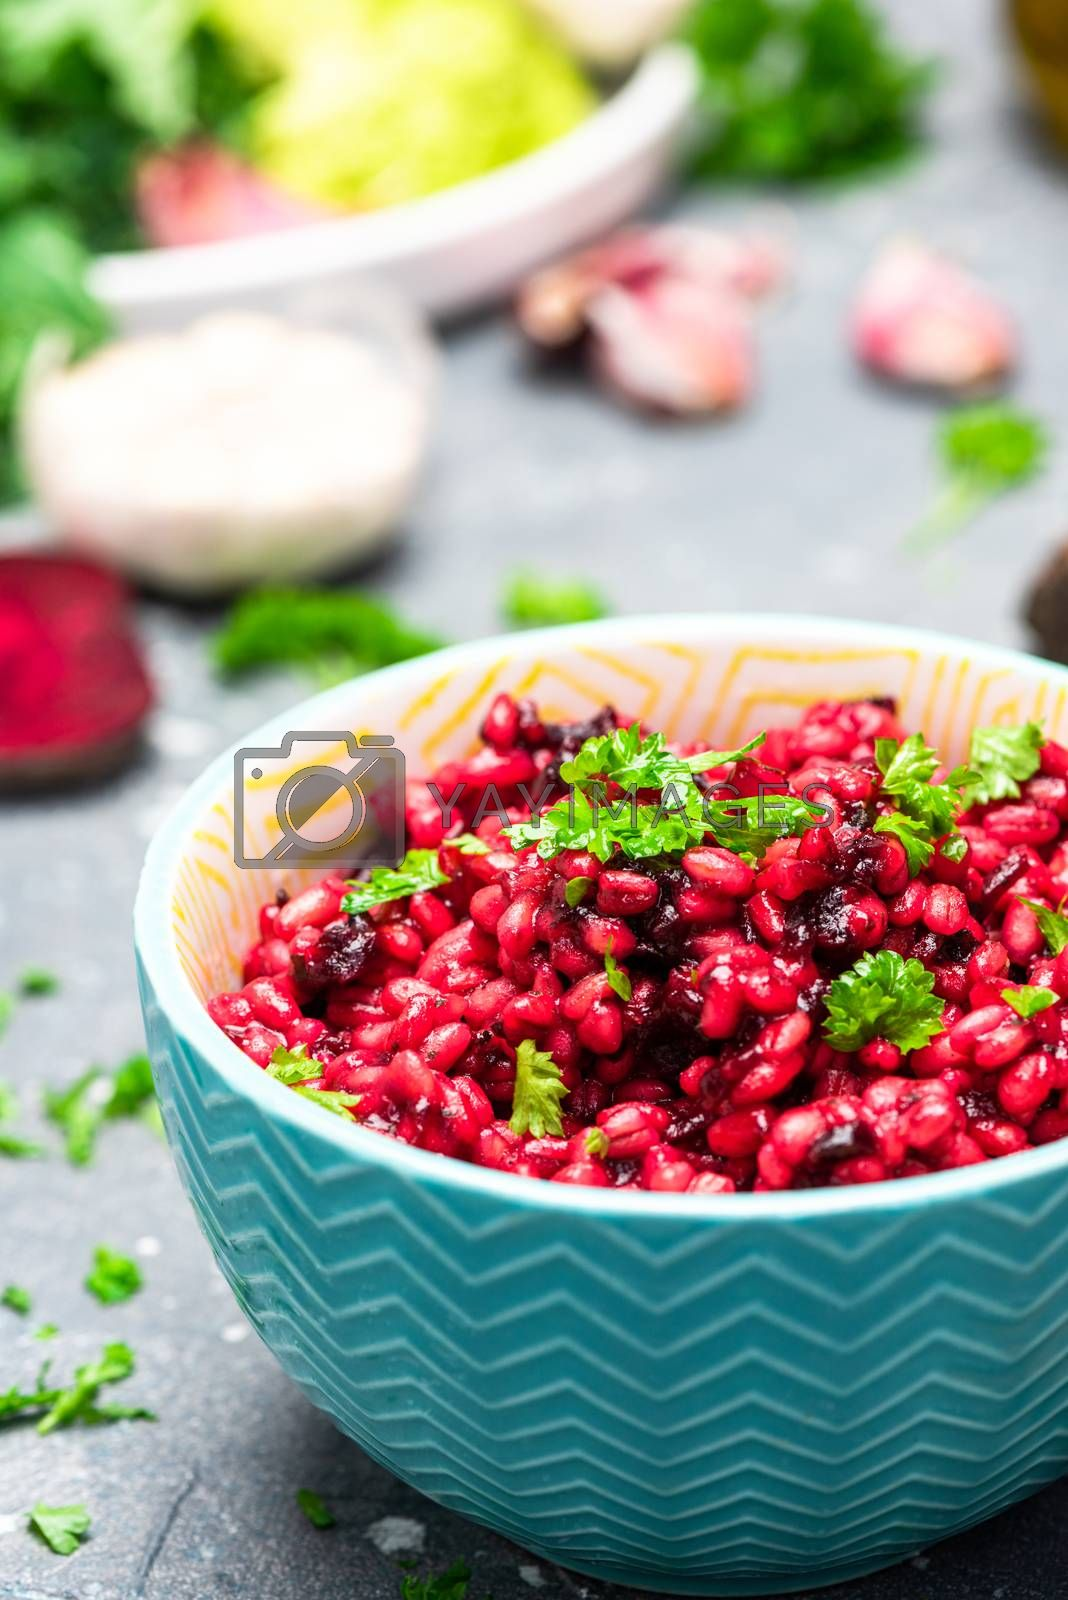 Beetroot and Parsley Buckwheat Groat Dish. Clean Eating. Plant Diet.